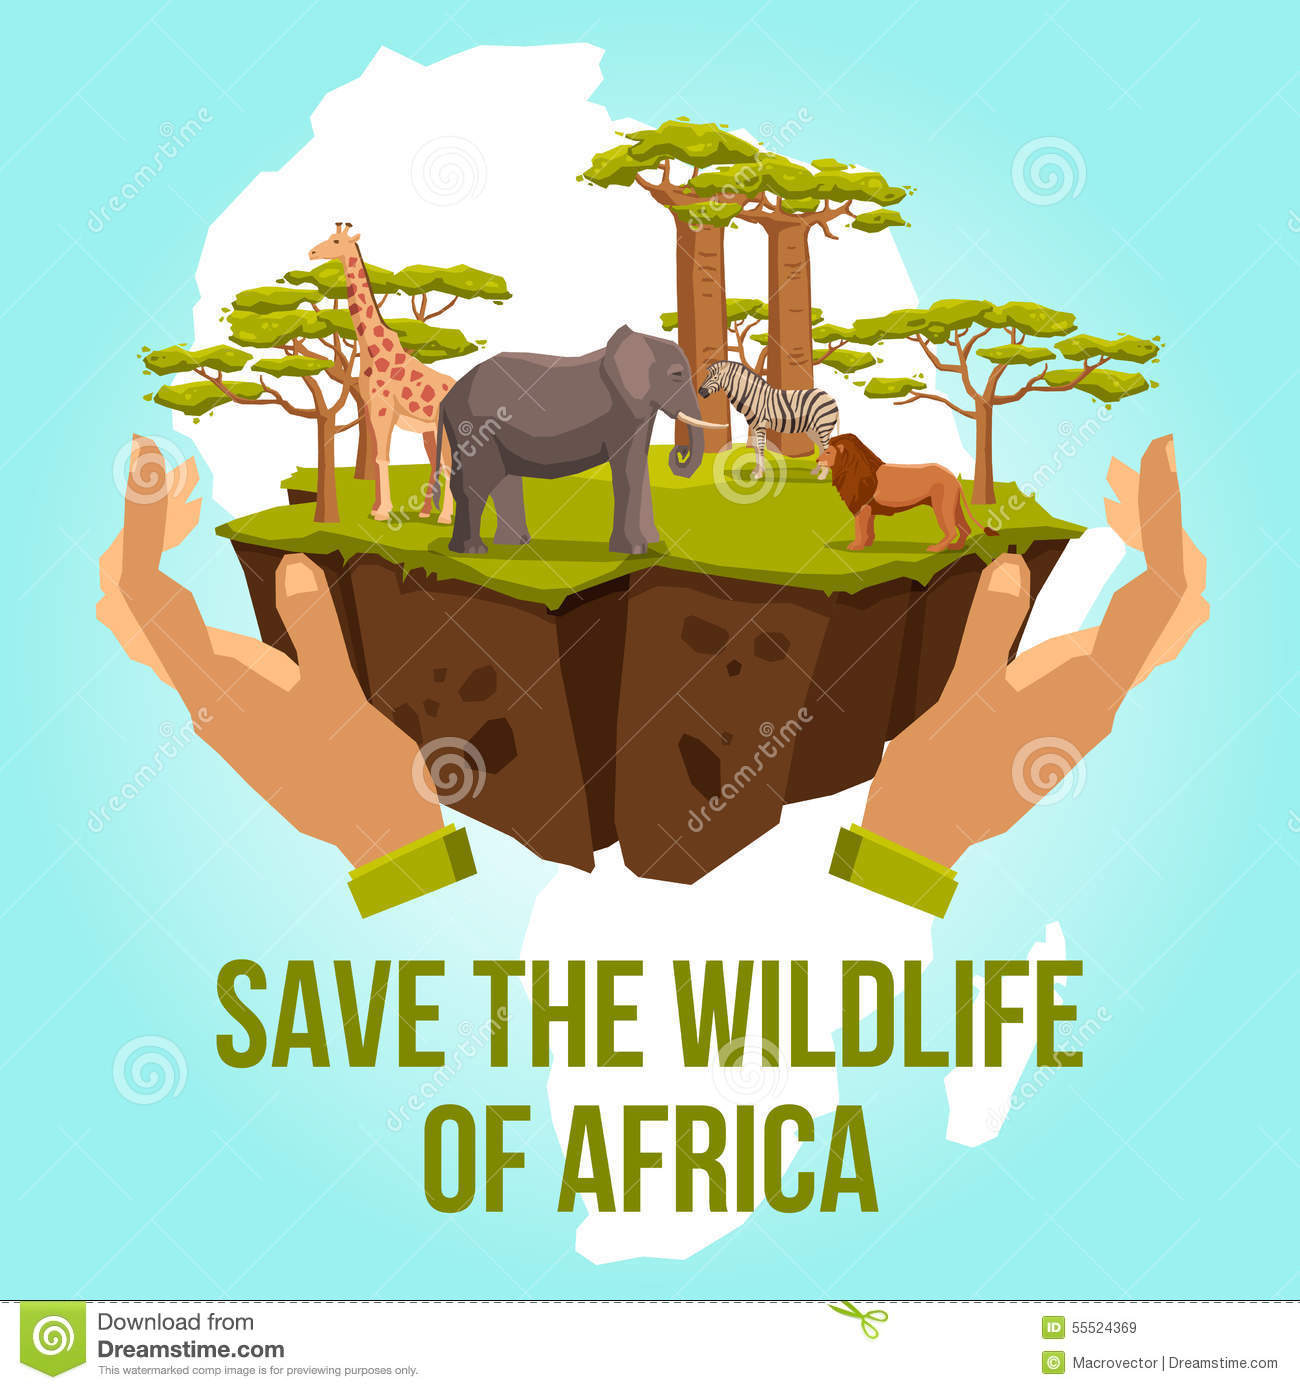 Save The Wildlife Of Africa Concept Stock Vector - Image ...